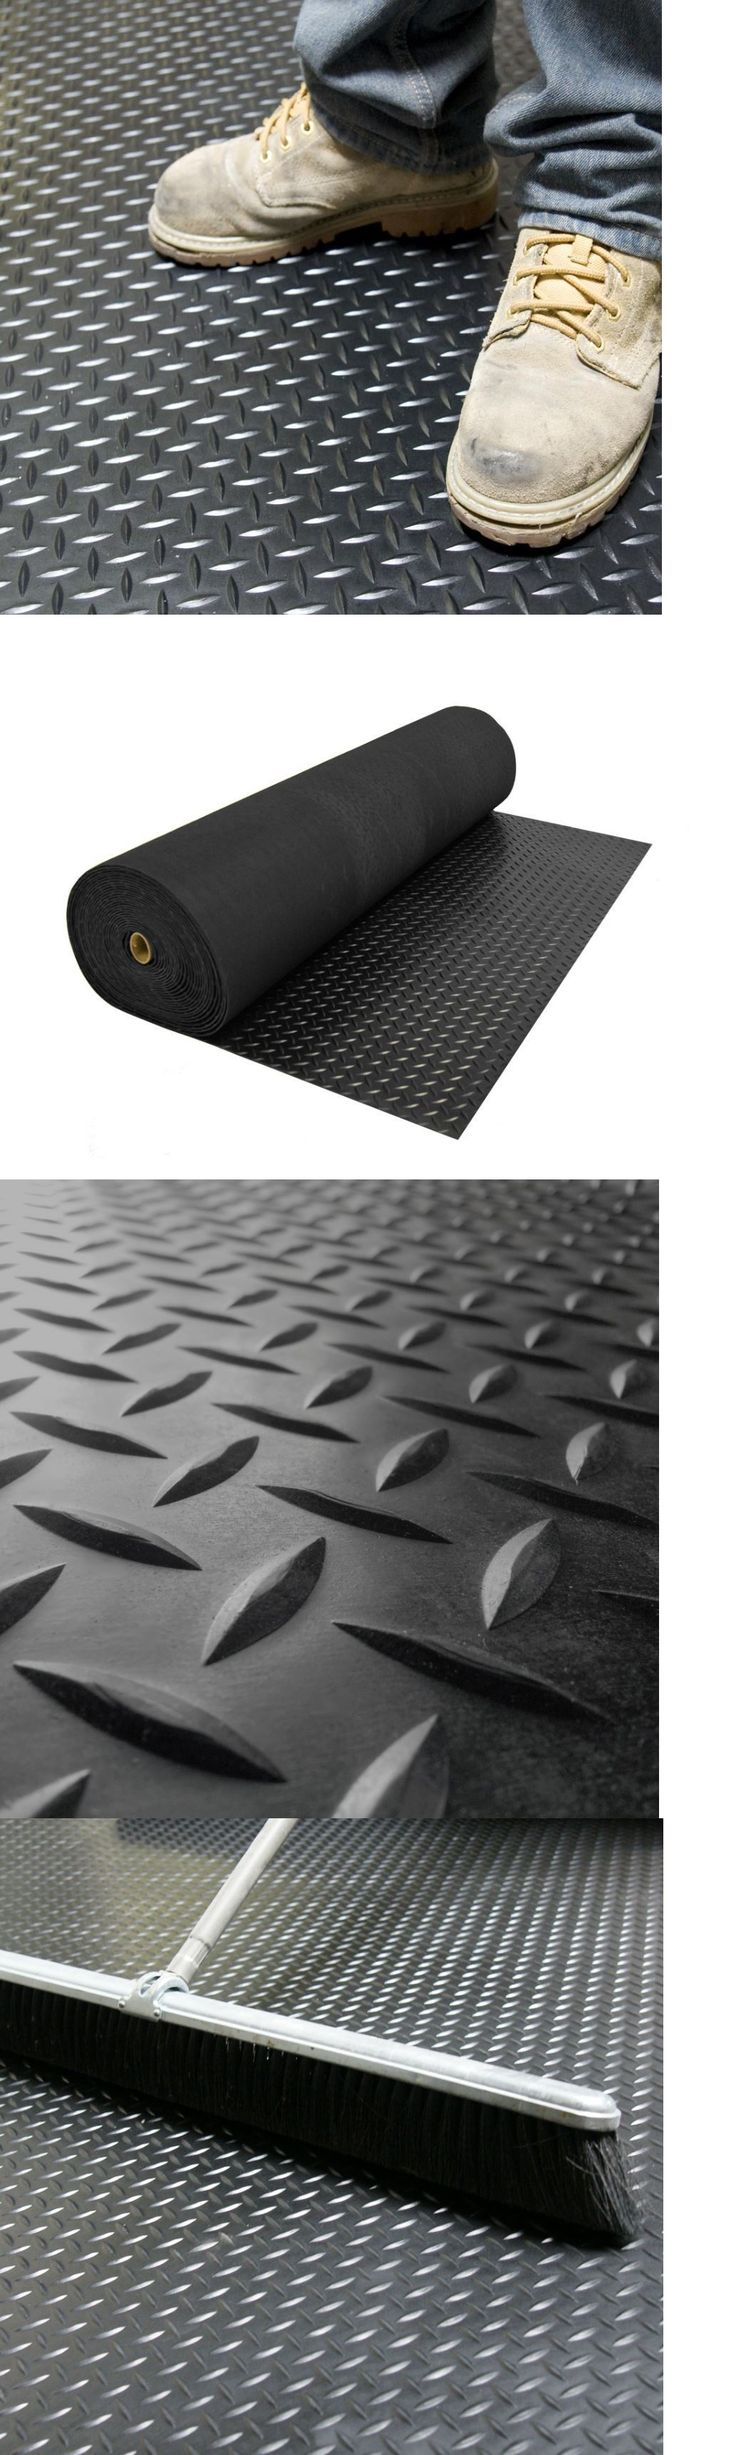 Equipment Mats and Flooring 179806: Rubber Flooring For Home Gym Garage Floor Protector 4Ft Black Trunk Liner Roll -> BUY IT NOW ONLY: $75.99 on eBay!